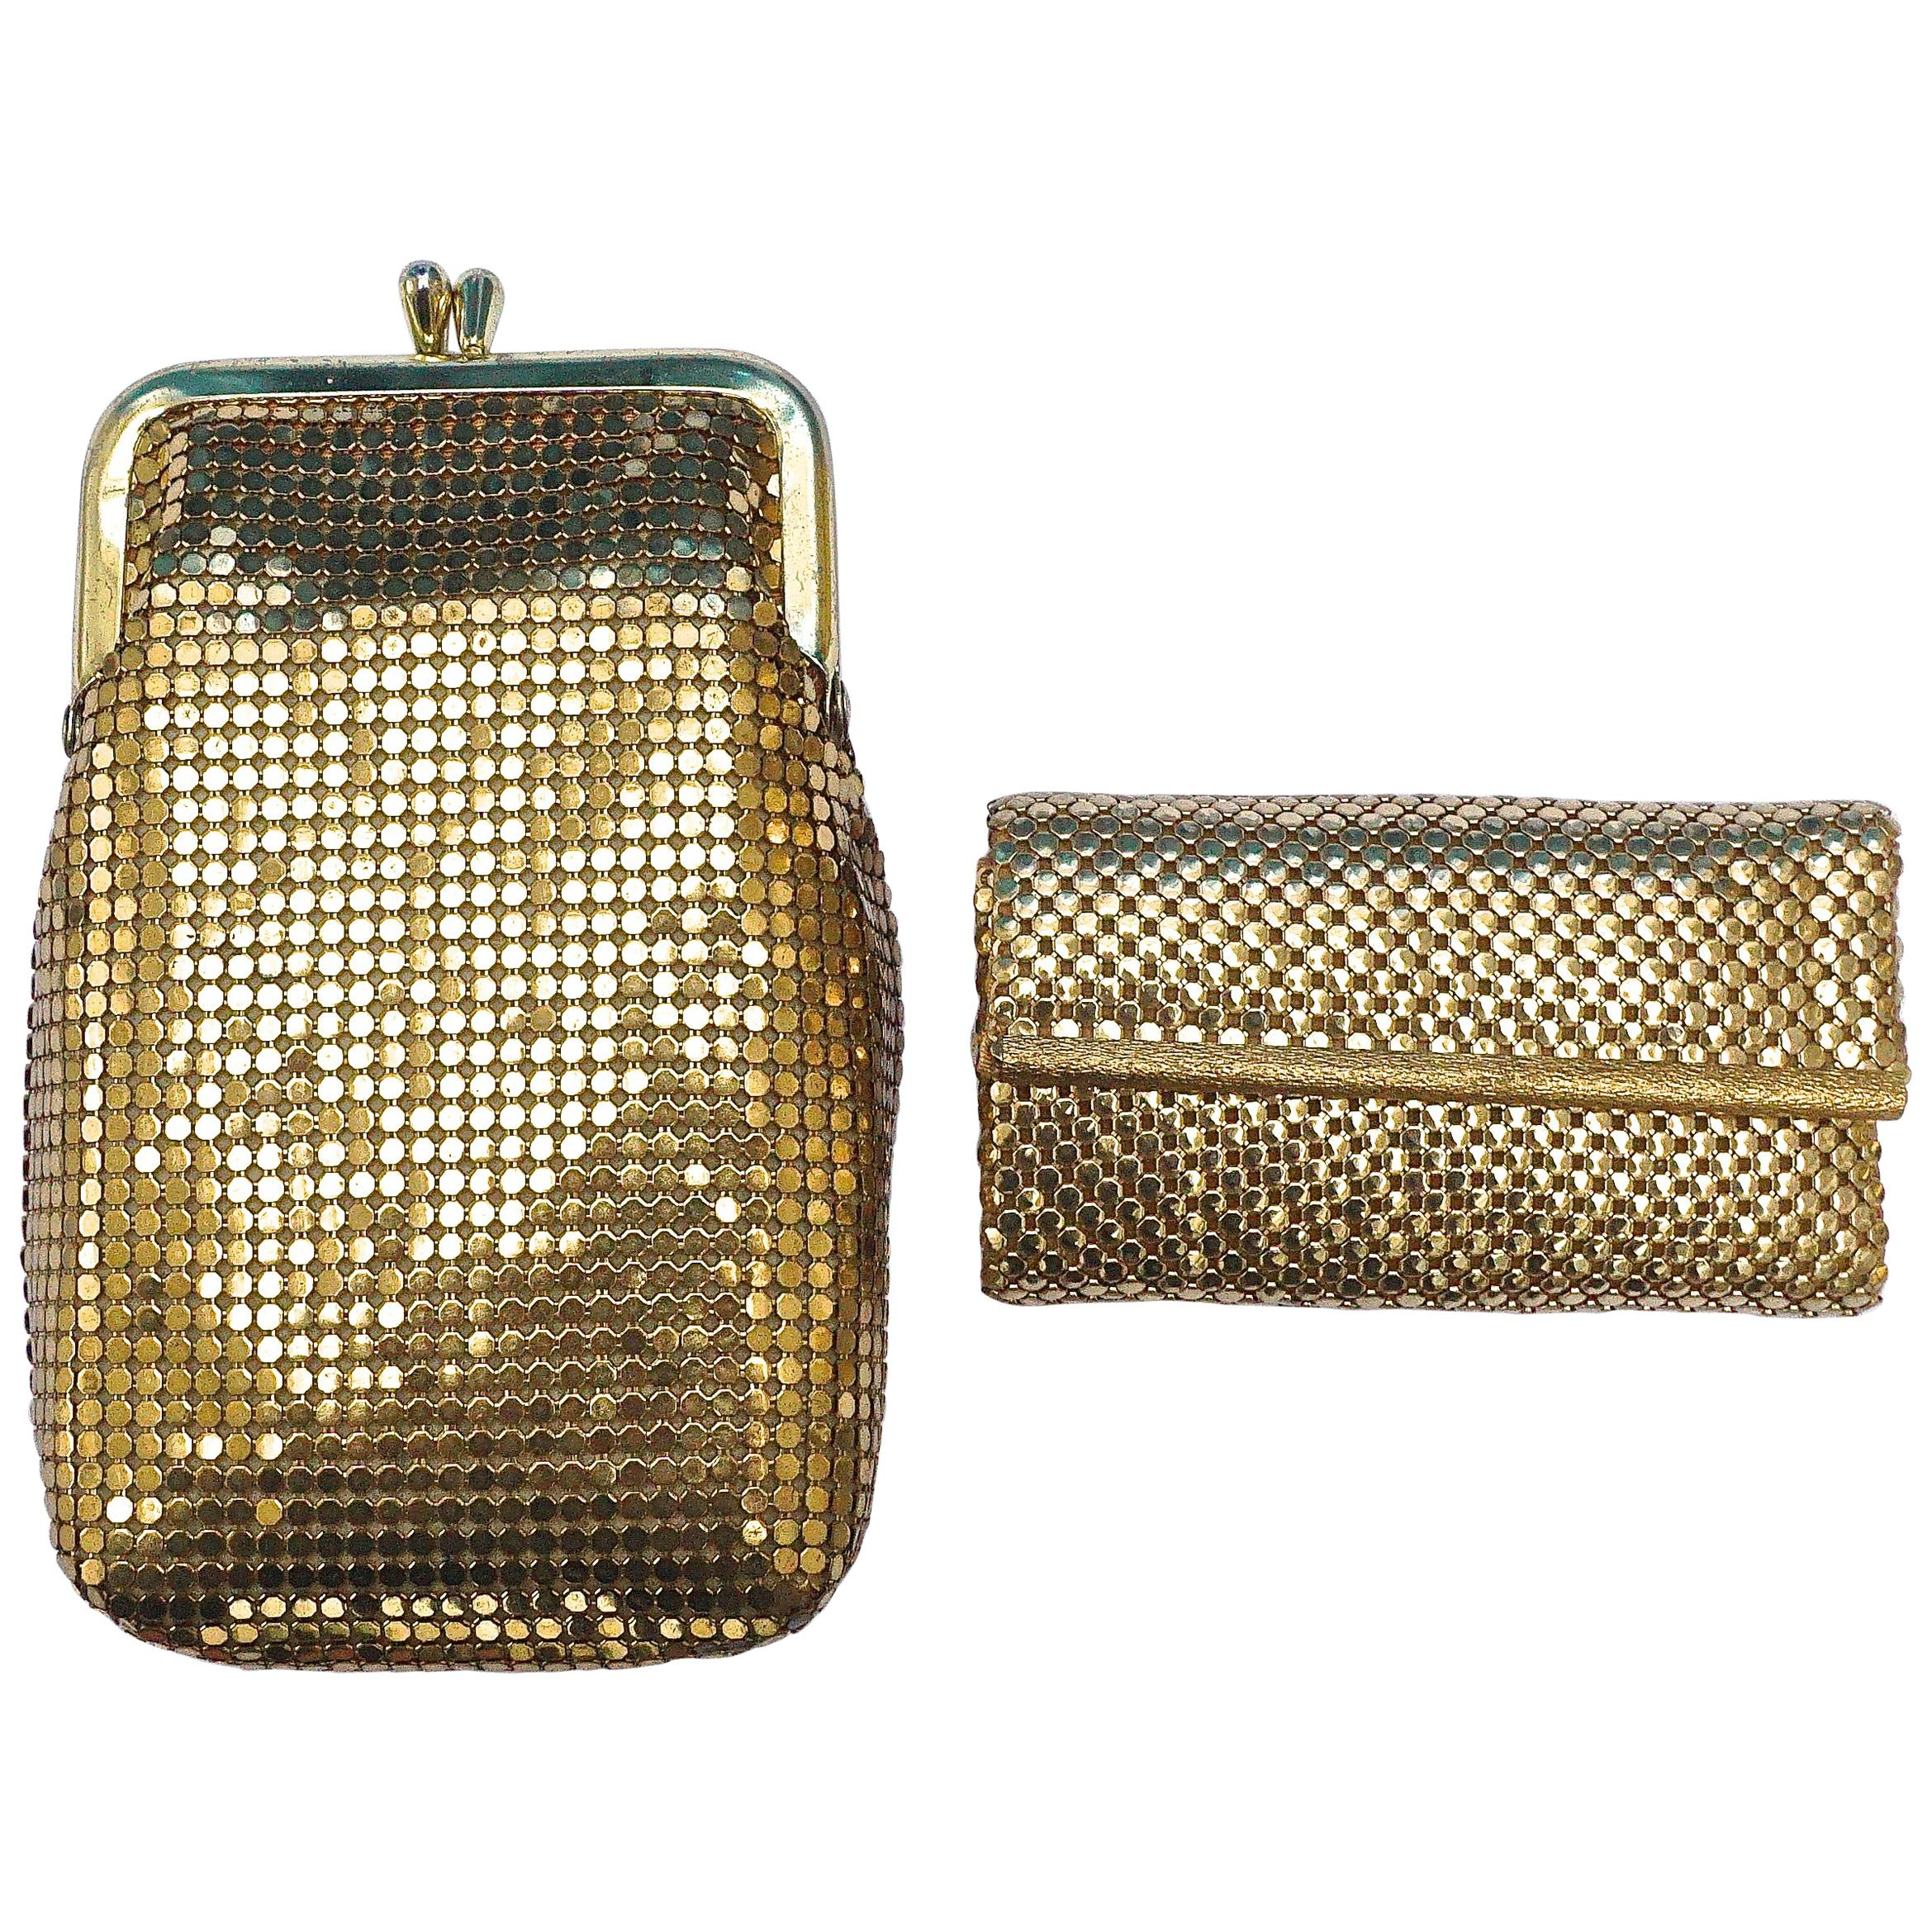 Whiiting & Davis Gold Mesh Purse and Key Holder in Original Boxes